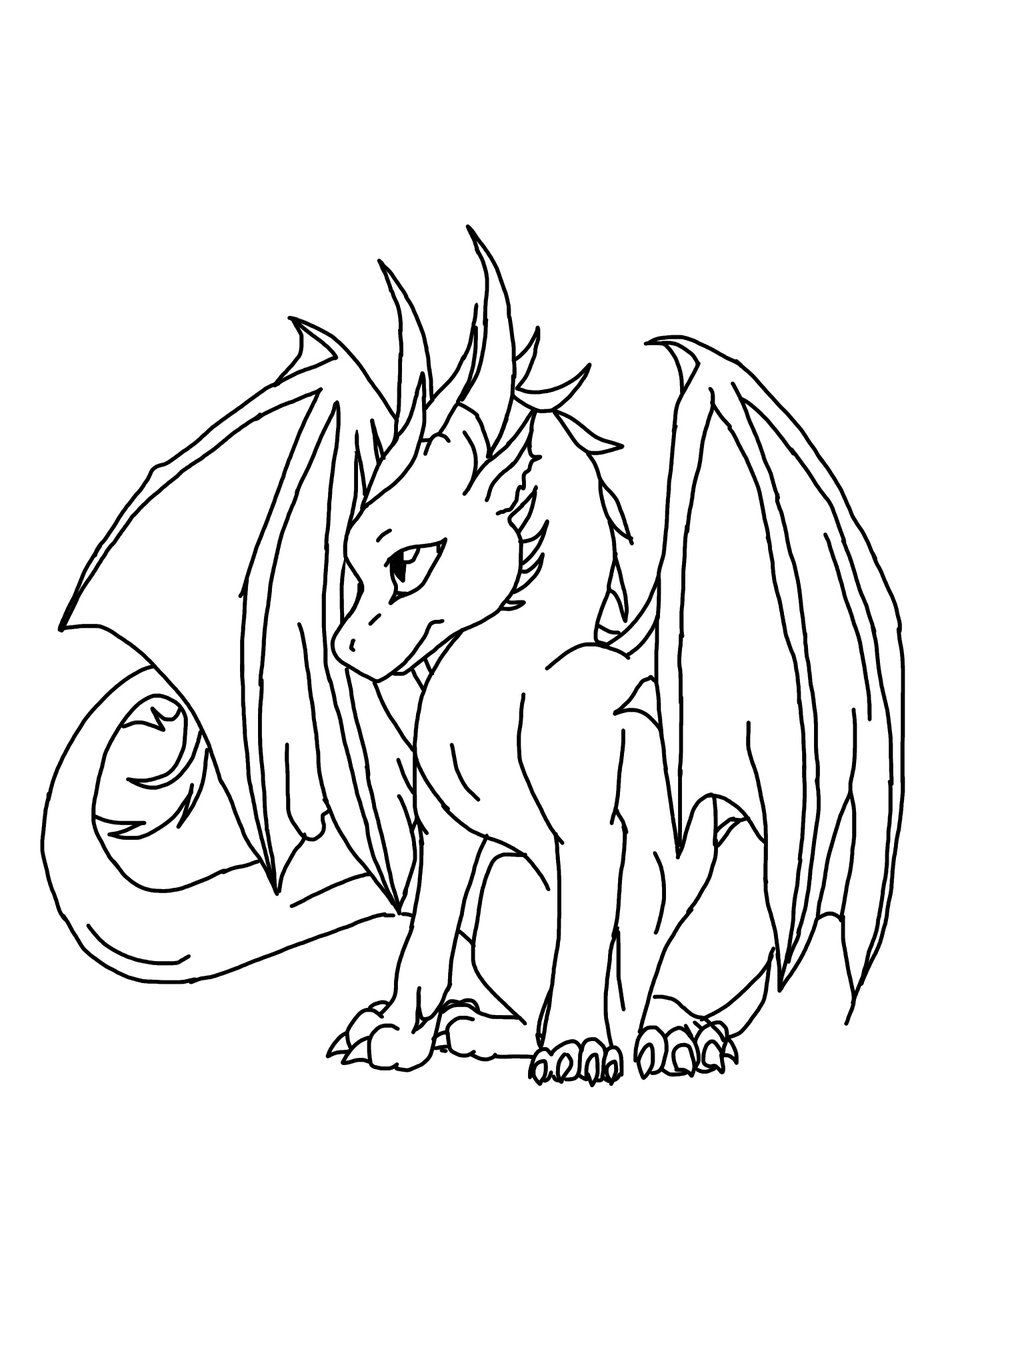 Pix For Gt Cool Easy Dragons Drawings Easy Dragon Drawings